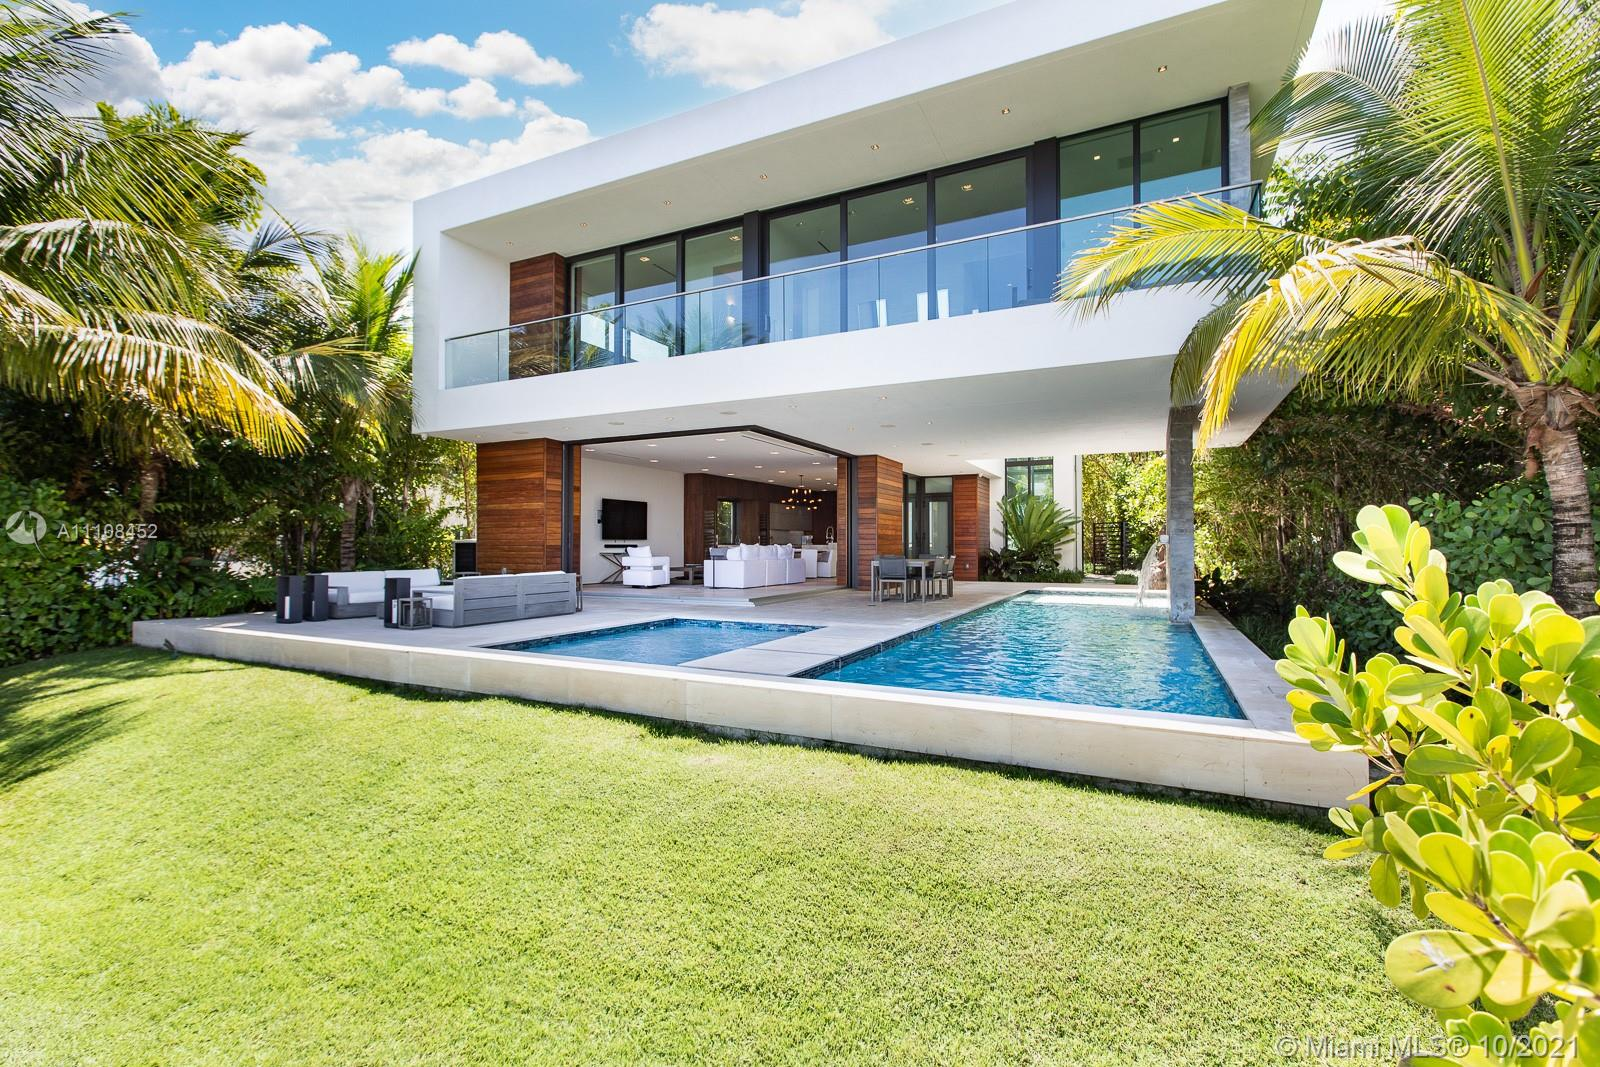 Welcome home to your very own furnished tropical waterfront estate. Located on prestigious Hibiscus Island with a 24/7 guard gate. Your private masterpiece offers wide bay views as well as views of Downtown Miami and Brickell, which provide for breathtaking sunsets. This home was masterfully designed in 2017 by award-winning architect Choeff Levy Fischman. The indoor/outdoor living is perfect for entertaining with its open dining and family areas. Featuring custom Italian kitchen, oak wood floors, brand new state of the art Crestron system, floor to ceiling windows and a 2 car garage. Step outside to your own resort style oasis including a salt water pool and spa as well as your own private dock. This is a must see!